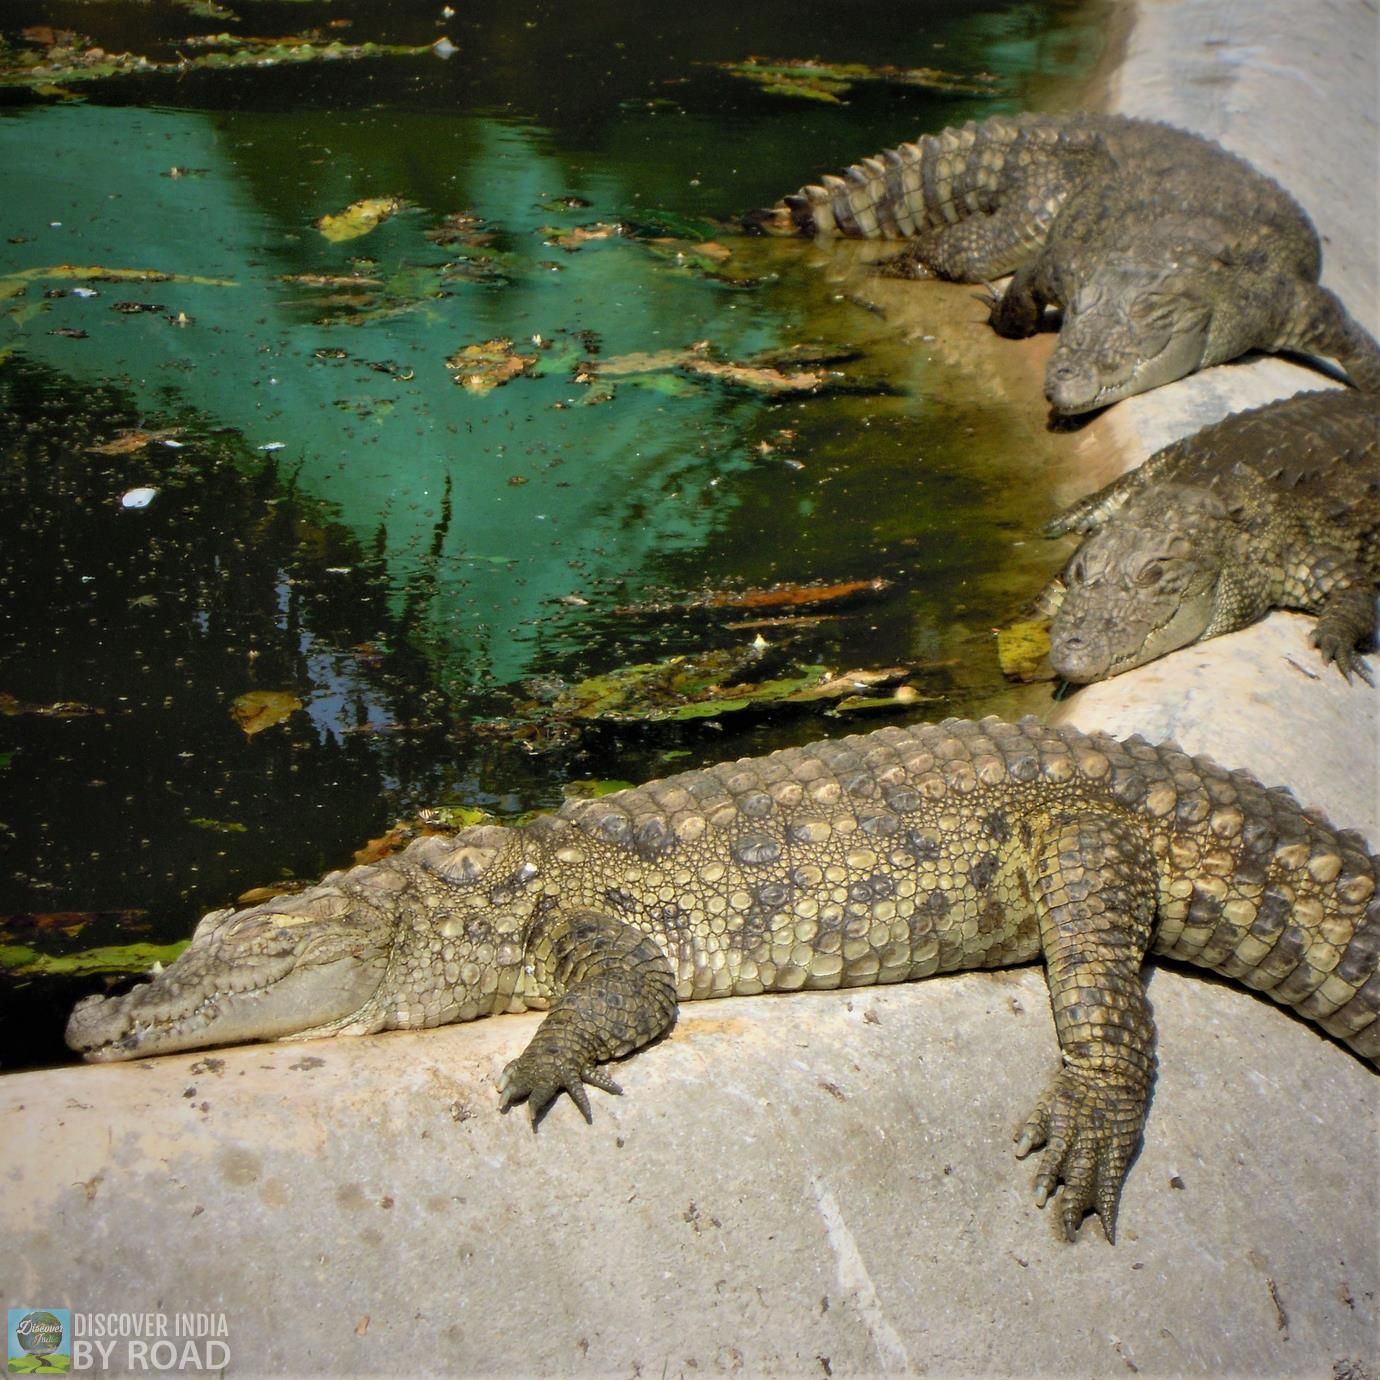 Crocodiles taking sunbath at Sakkarbaug Zoo, Junagadh